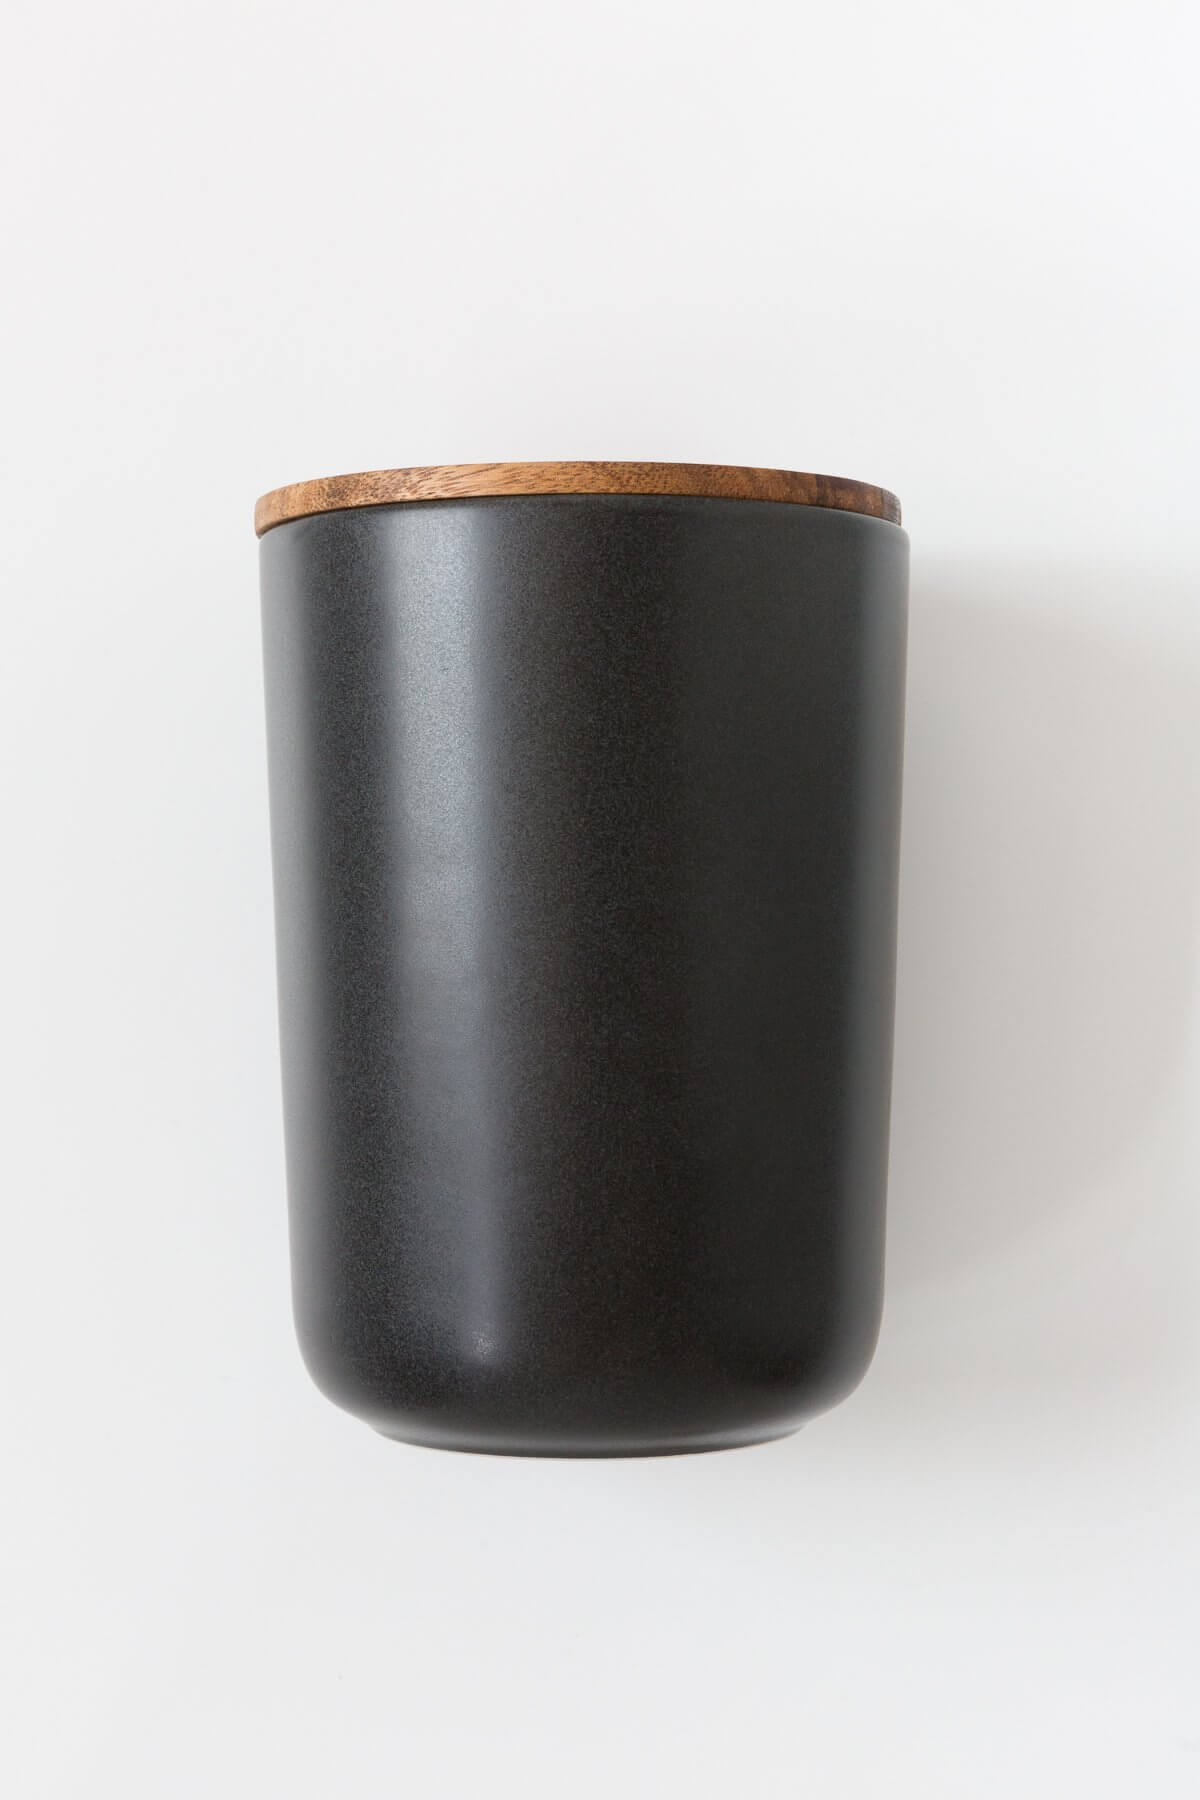 Be Home Stoneware Black Ceramic Container